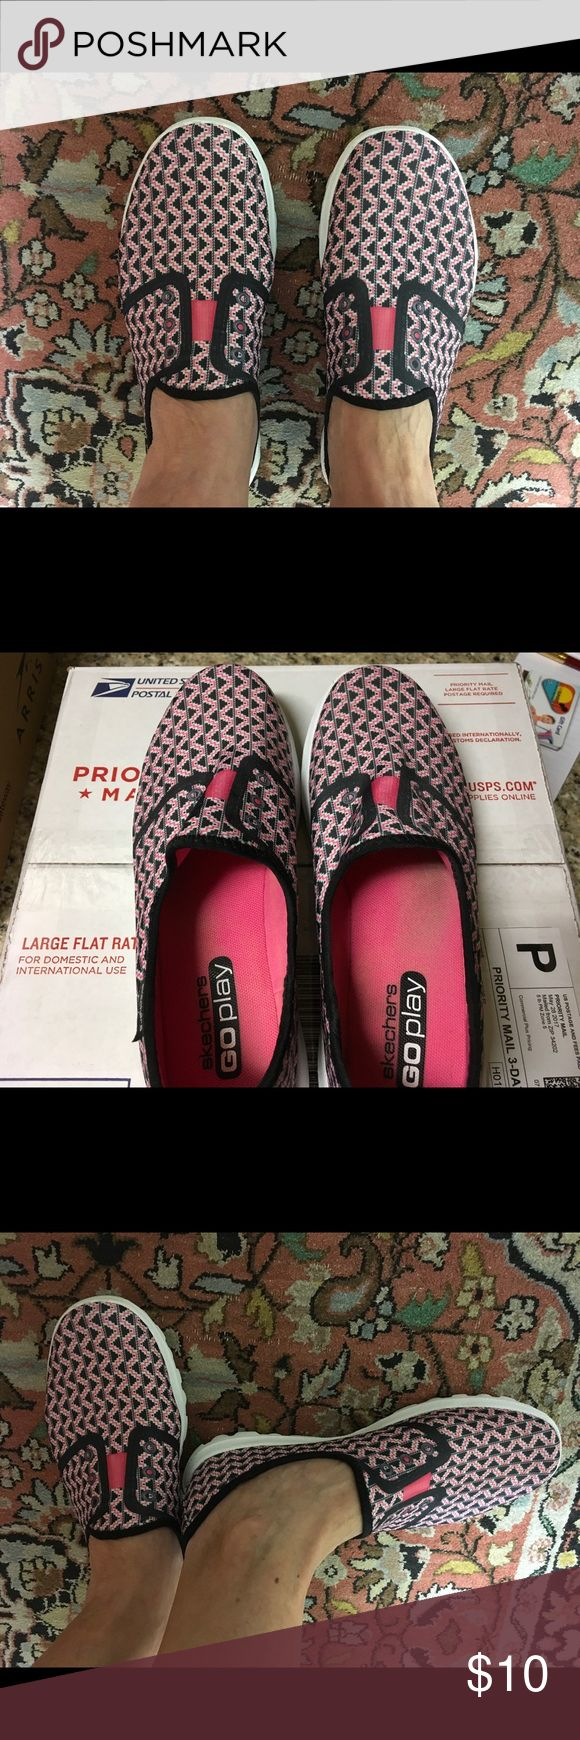 Sketchers Go Play Sketchers Go Play Resalyte slip on shoes size 8 in good condition very comfy Navy pink white Skechers Shoes Sneakers